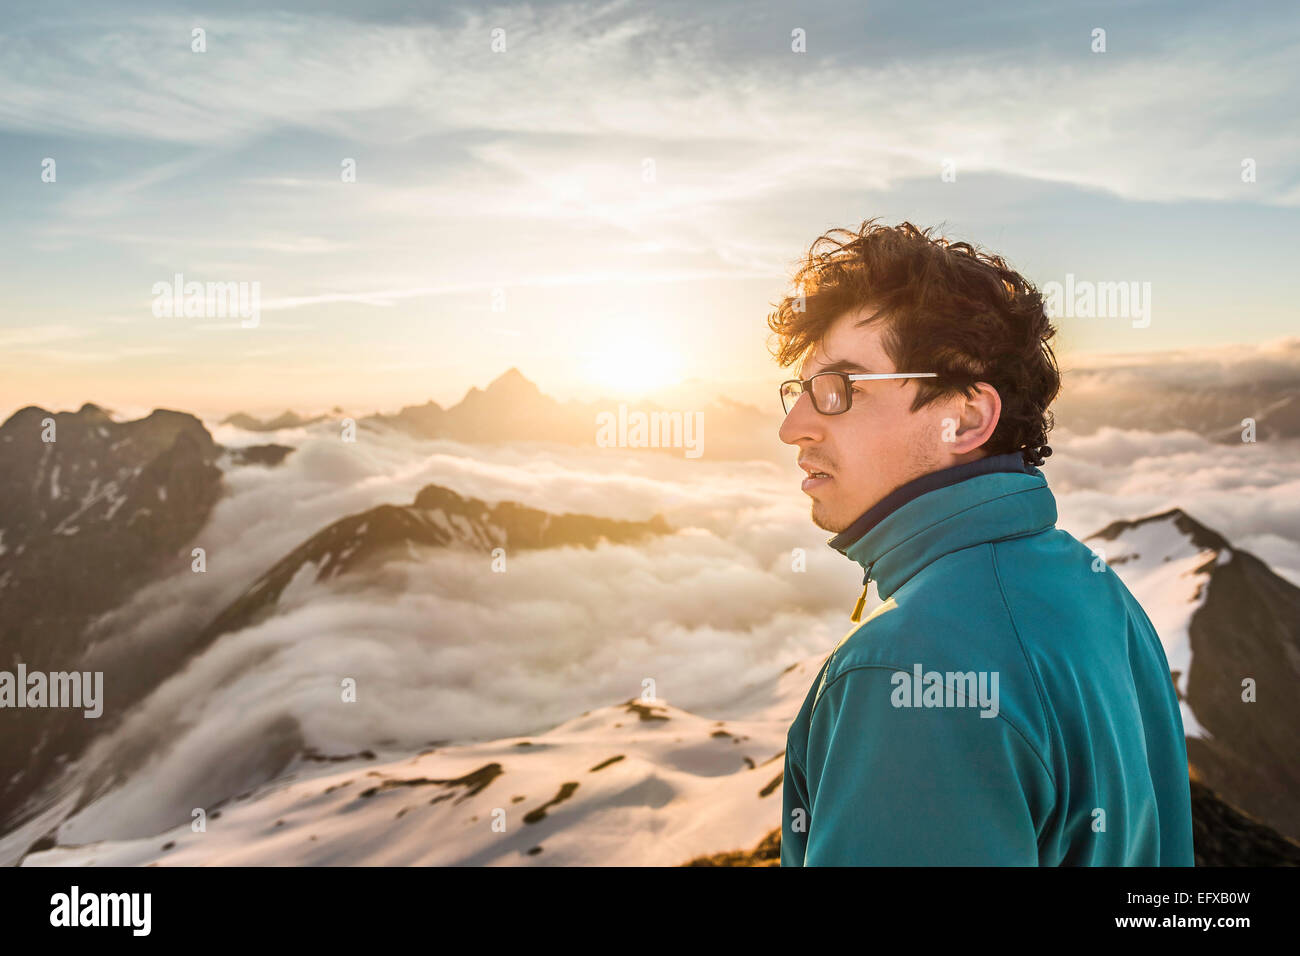 Young male mountain trekker looking at view above clouds, Bavarian Alps, Oberstdorf, Bavaria, Germany - Stock Image